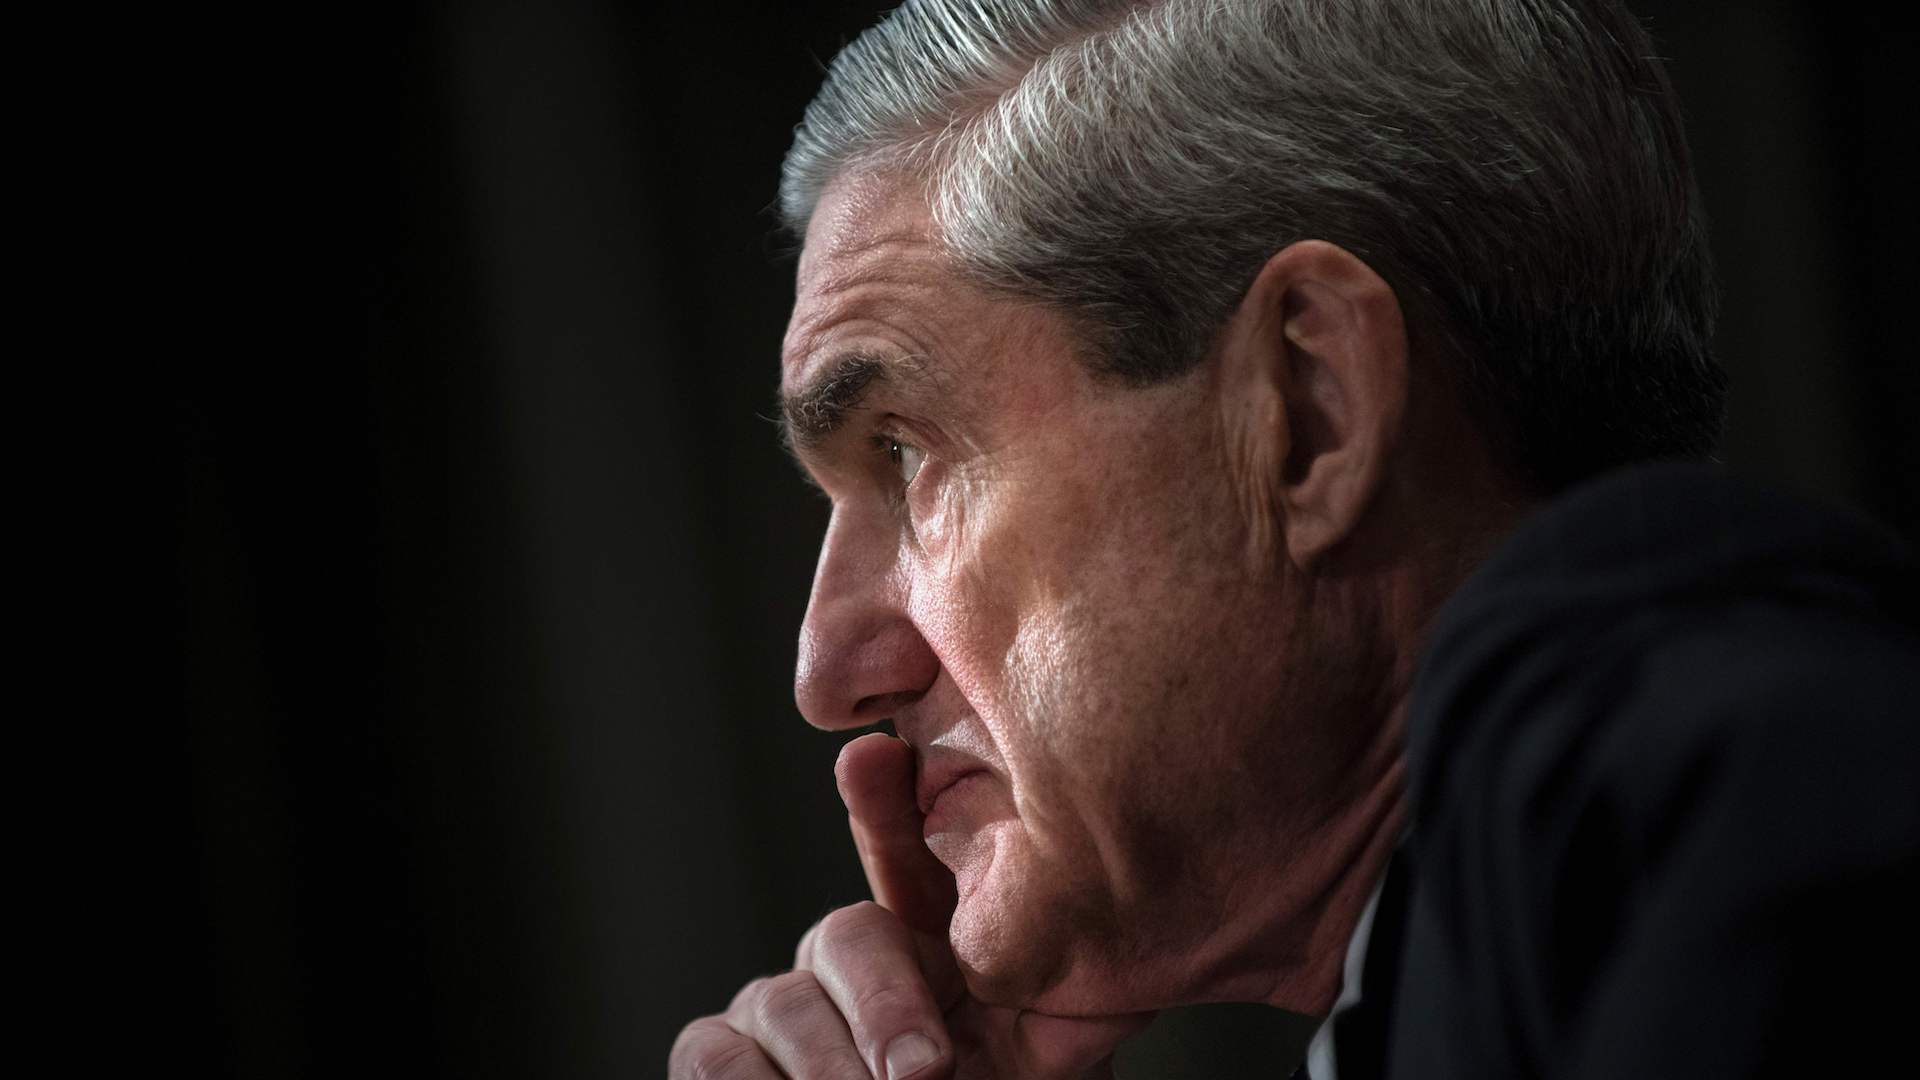 Special counsel is investigating Trump for possible obstruction of justice, officials say